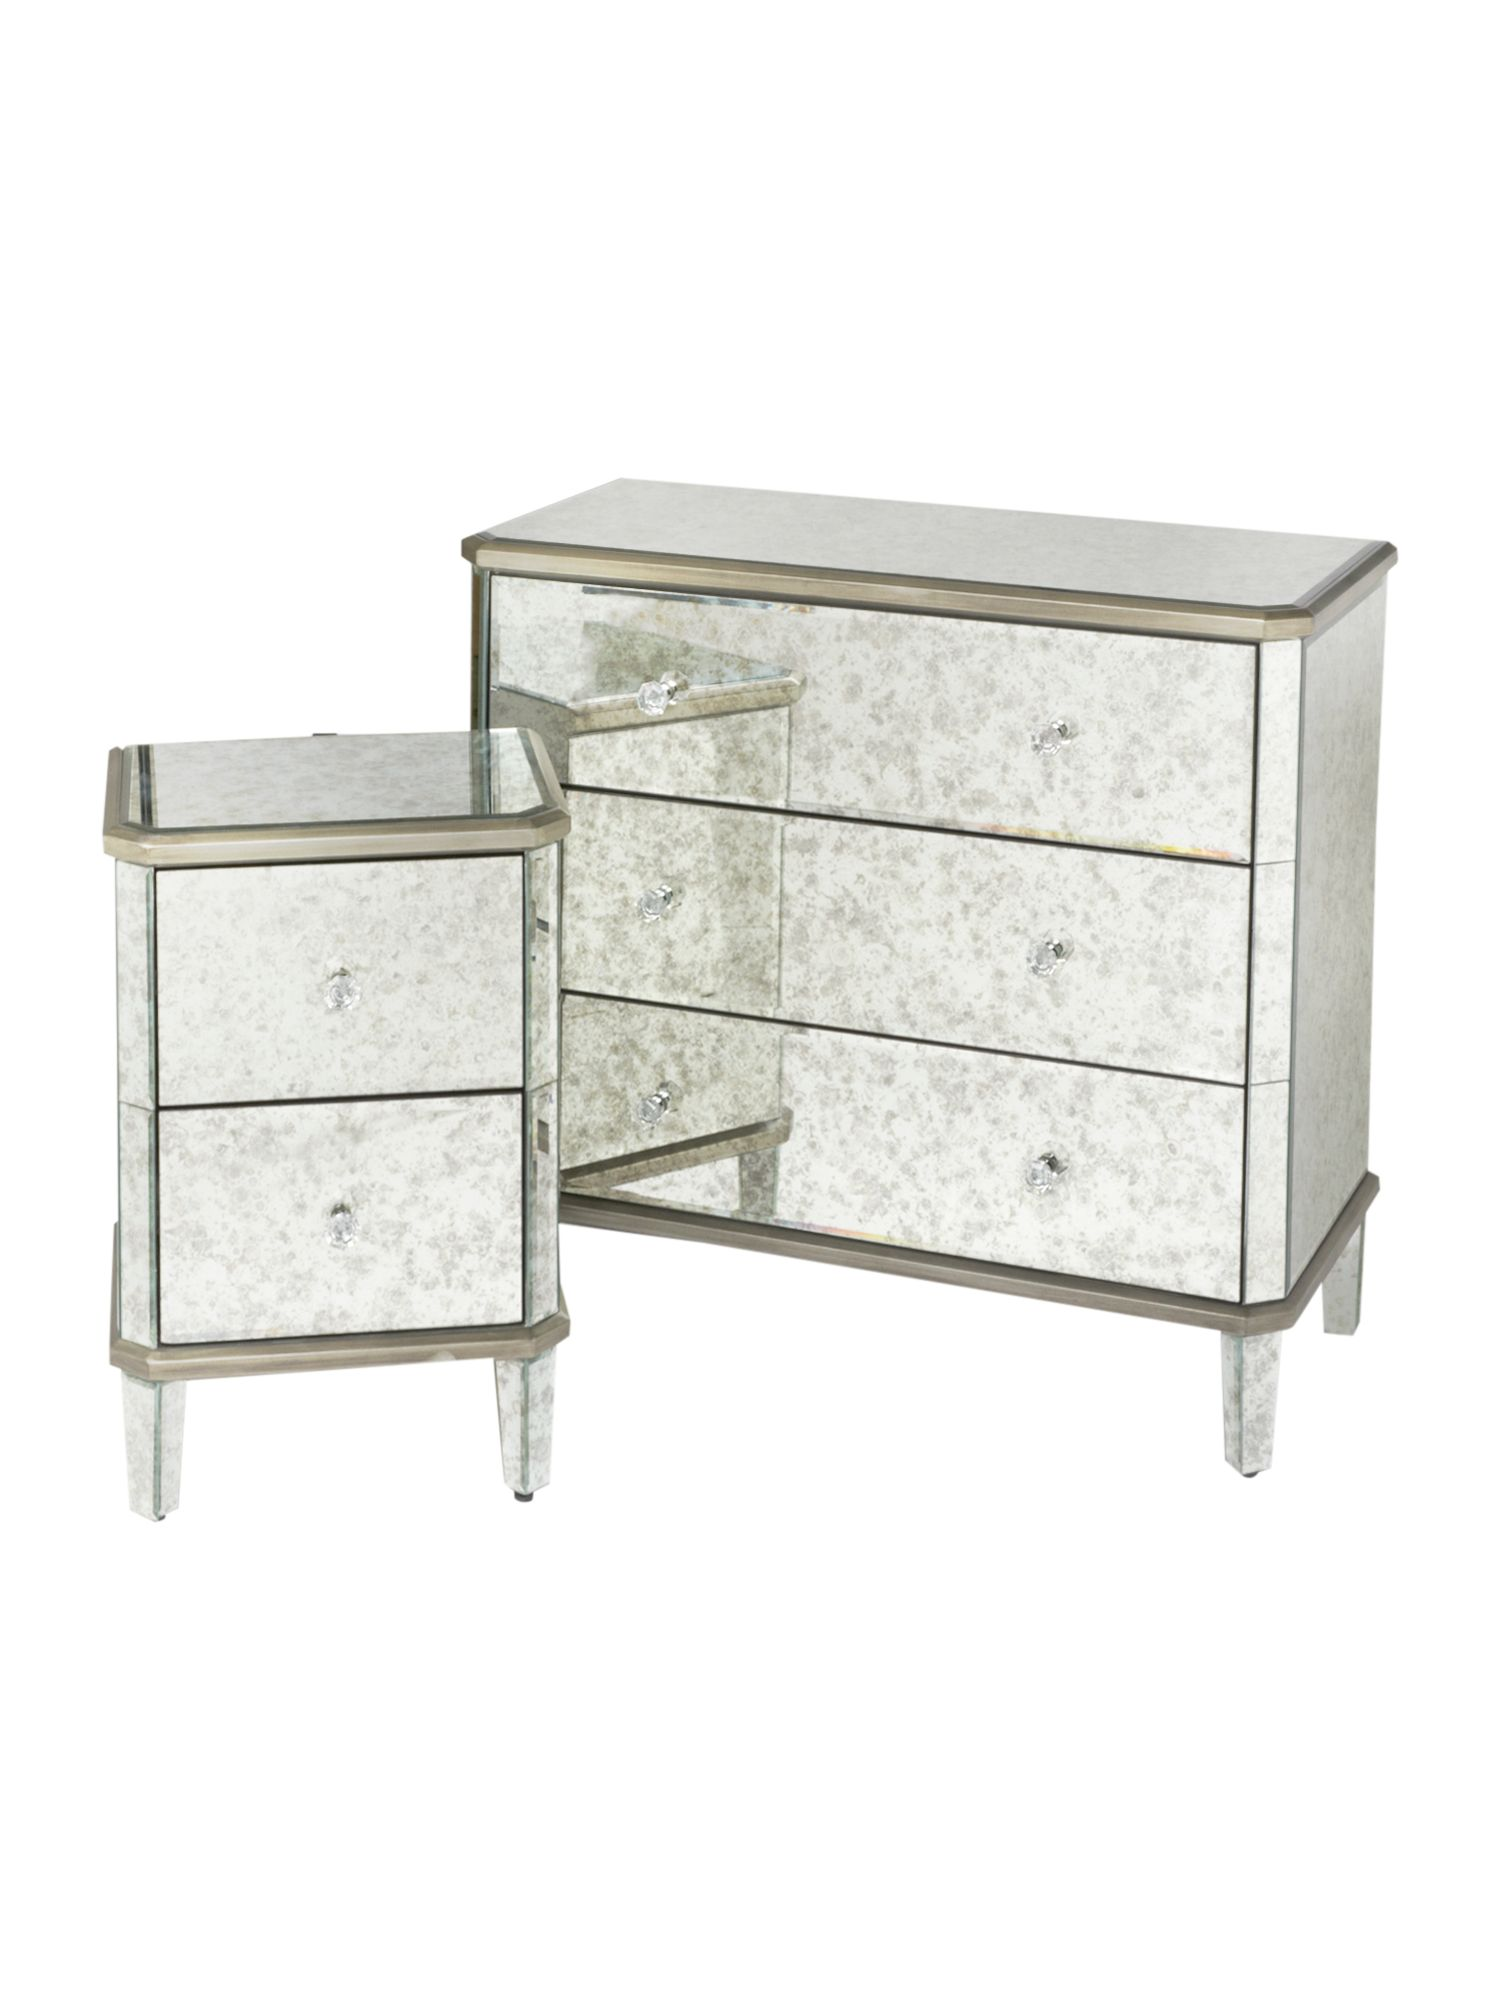 Anise bedroom furniture range